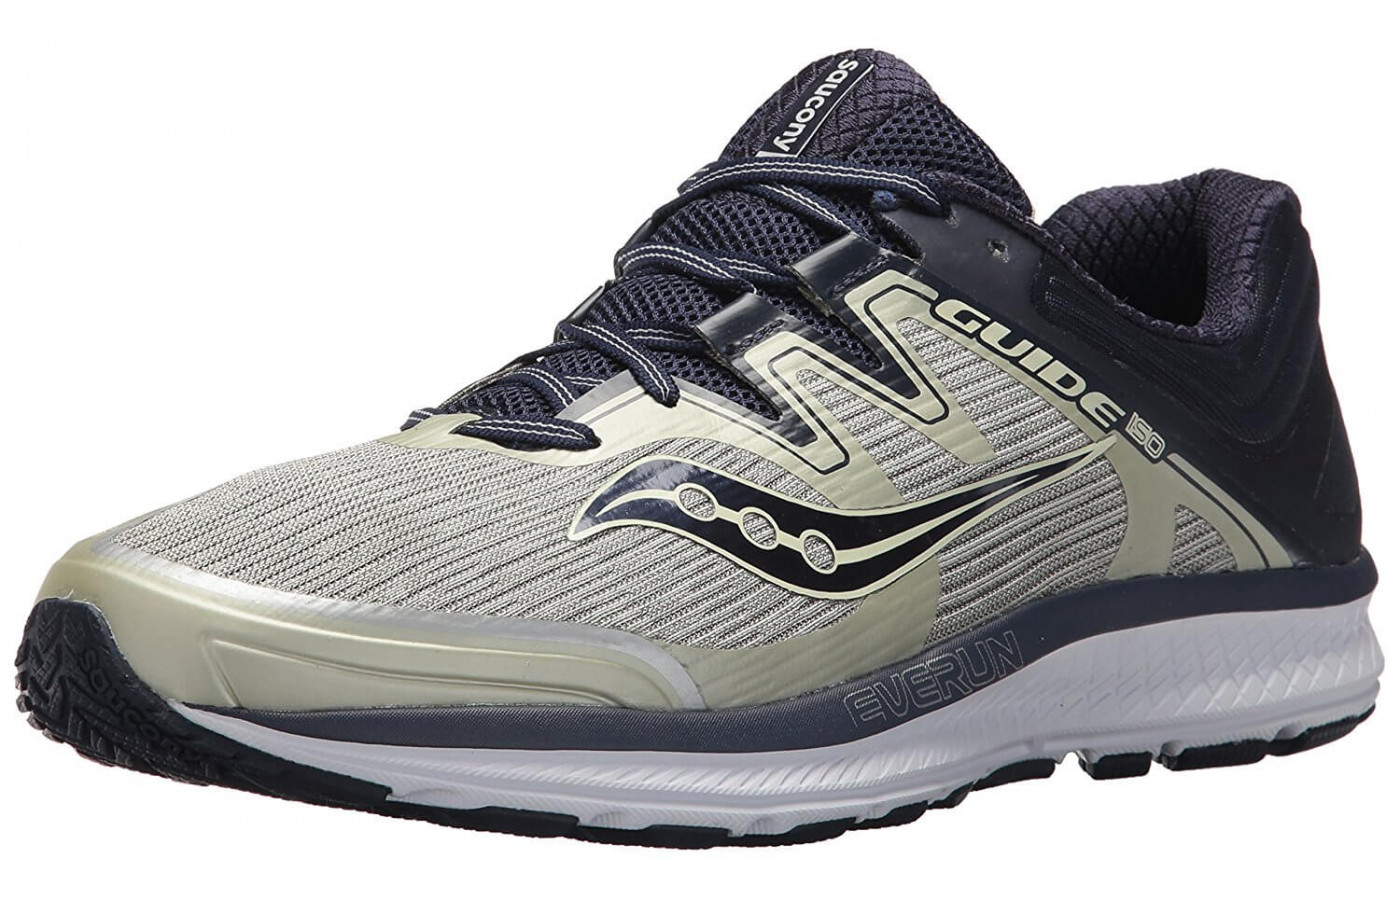 db730e3f07e5 Saucony Guide ISO Reviewed - To Buy or Not in Apr 2019